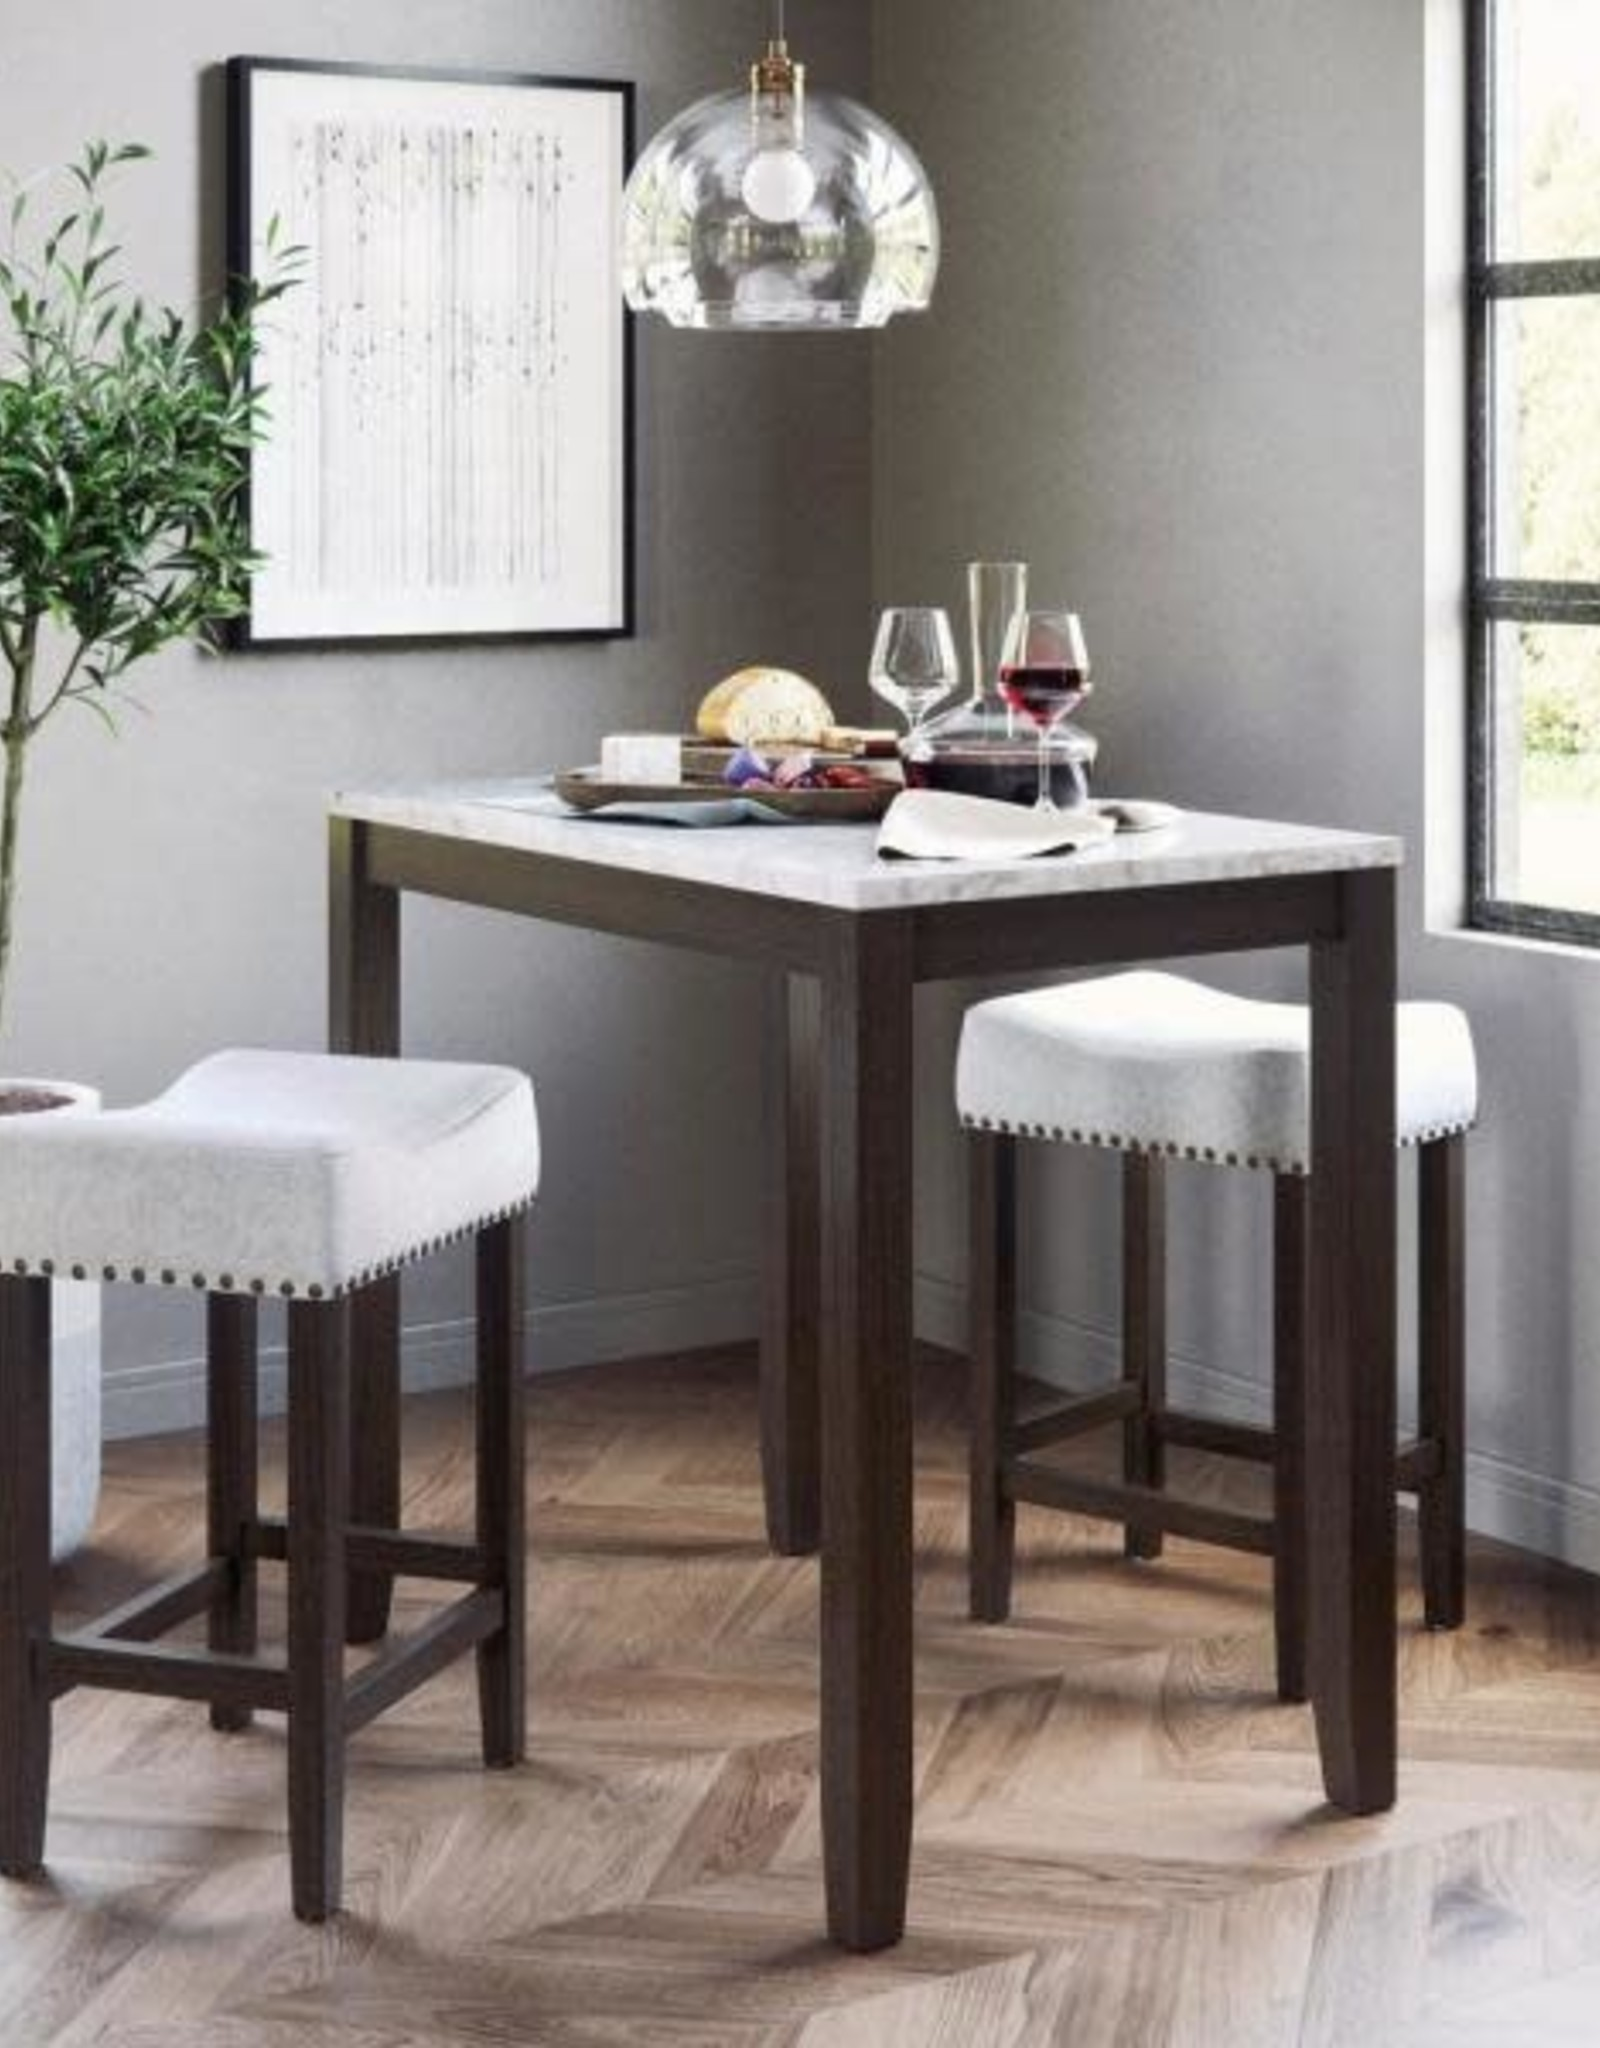 Nathan James Viktor Three Piece Dining Set Kitchen Pub Table White Marble Top, Dark Brown Solid Wood Base, Light Gray Fabric Seat